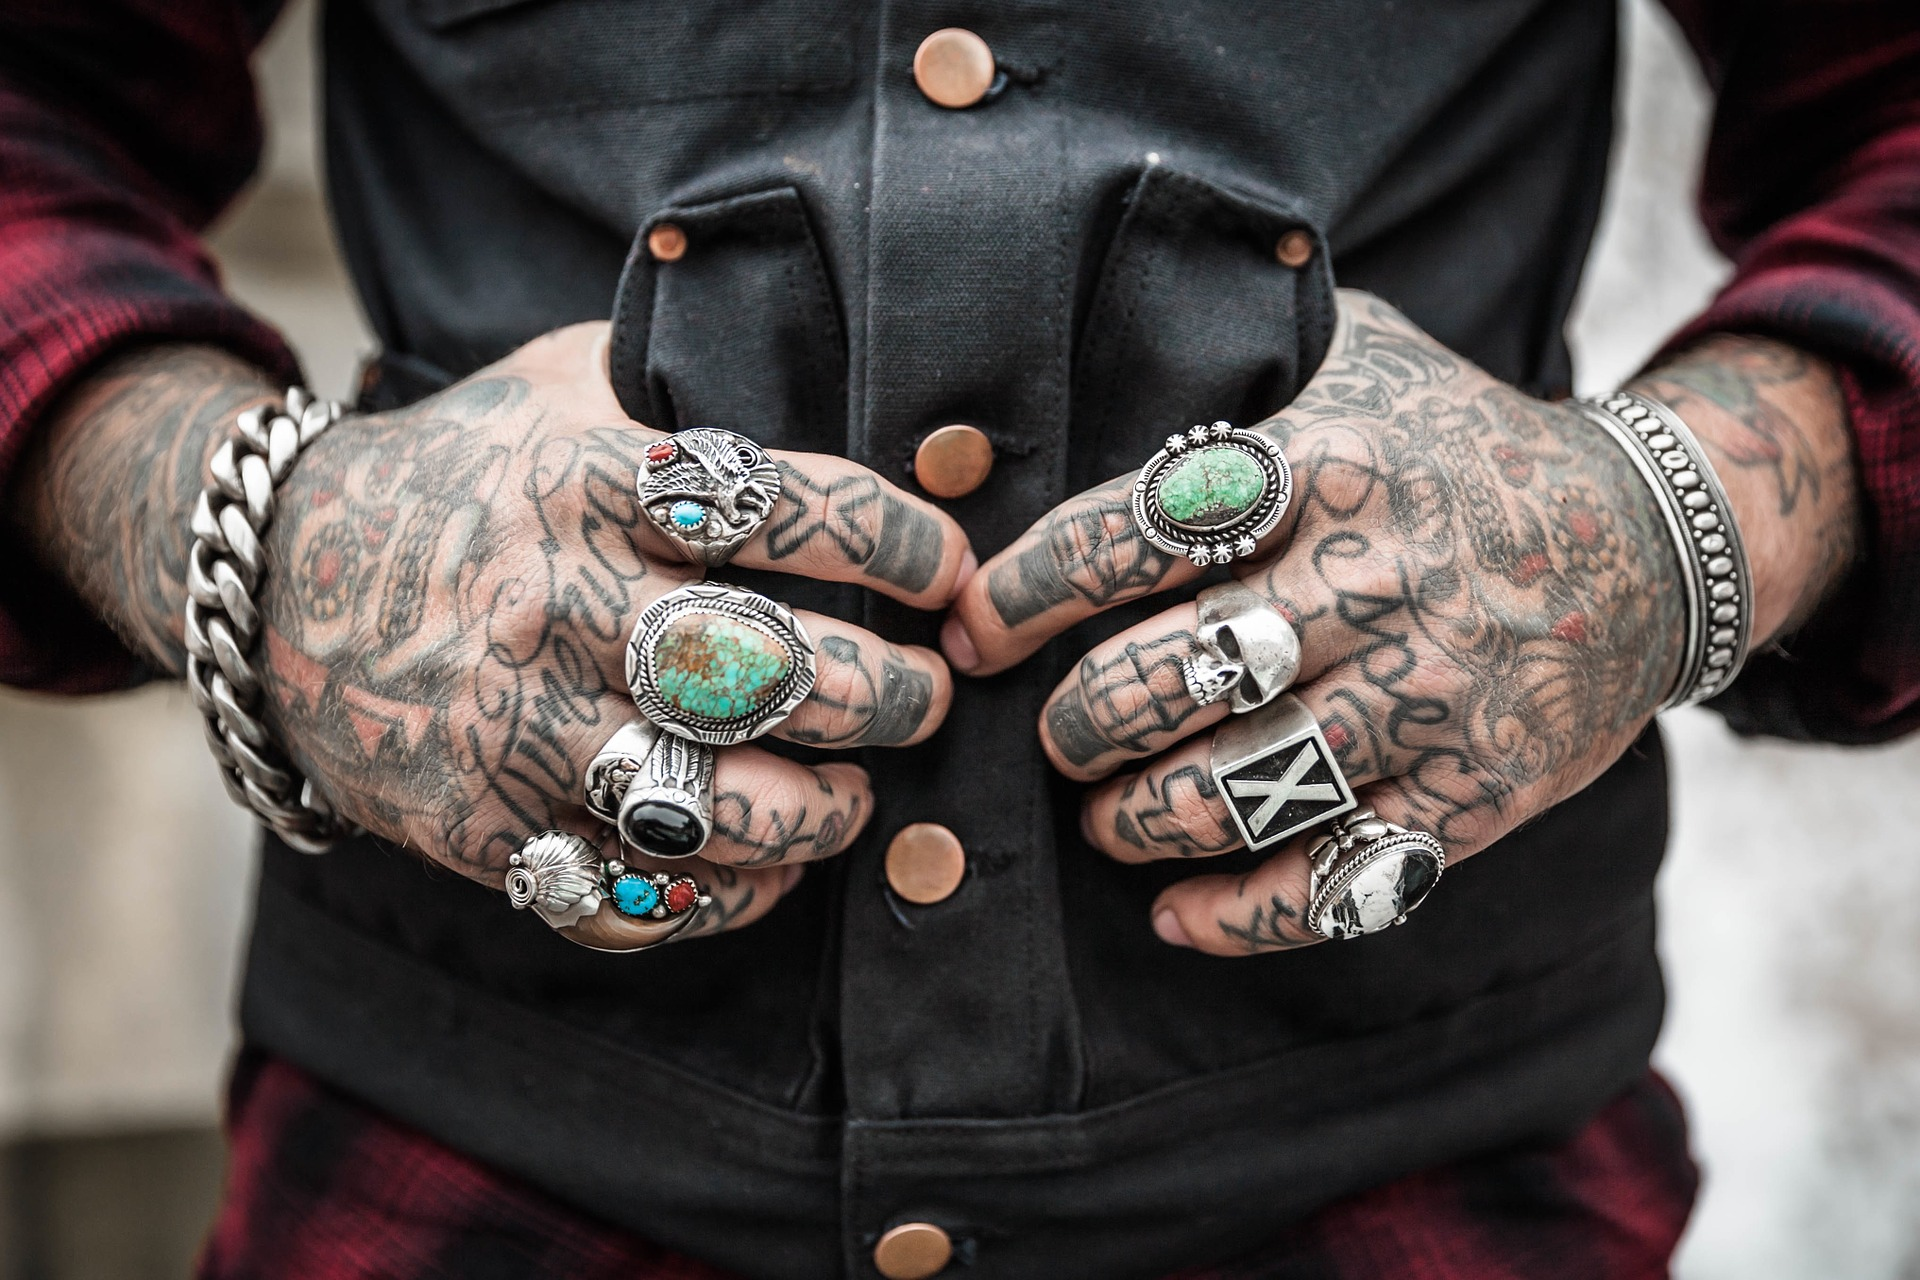 Tattoos Affect Your Health Long Term Side Effects Ink Has On Your